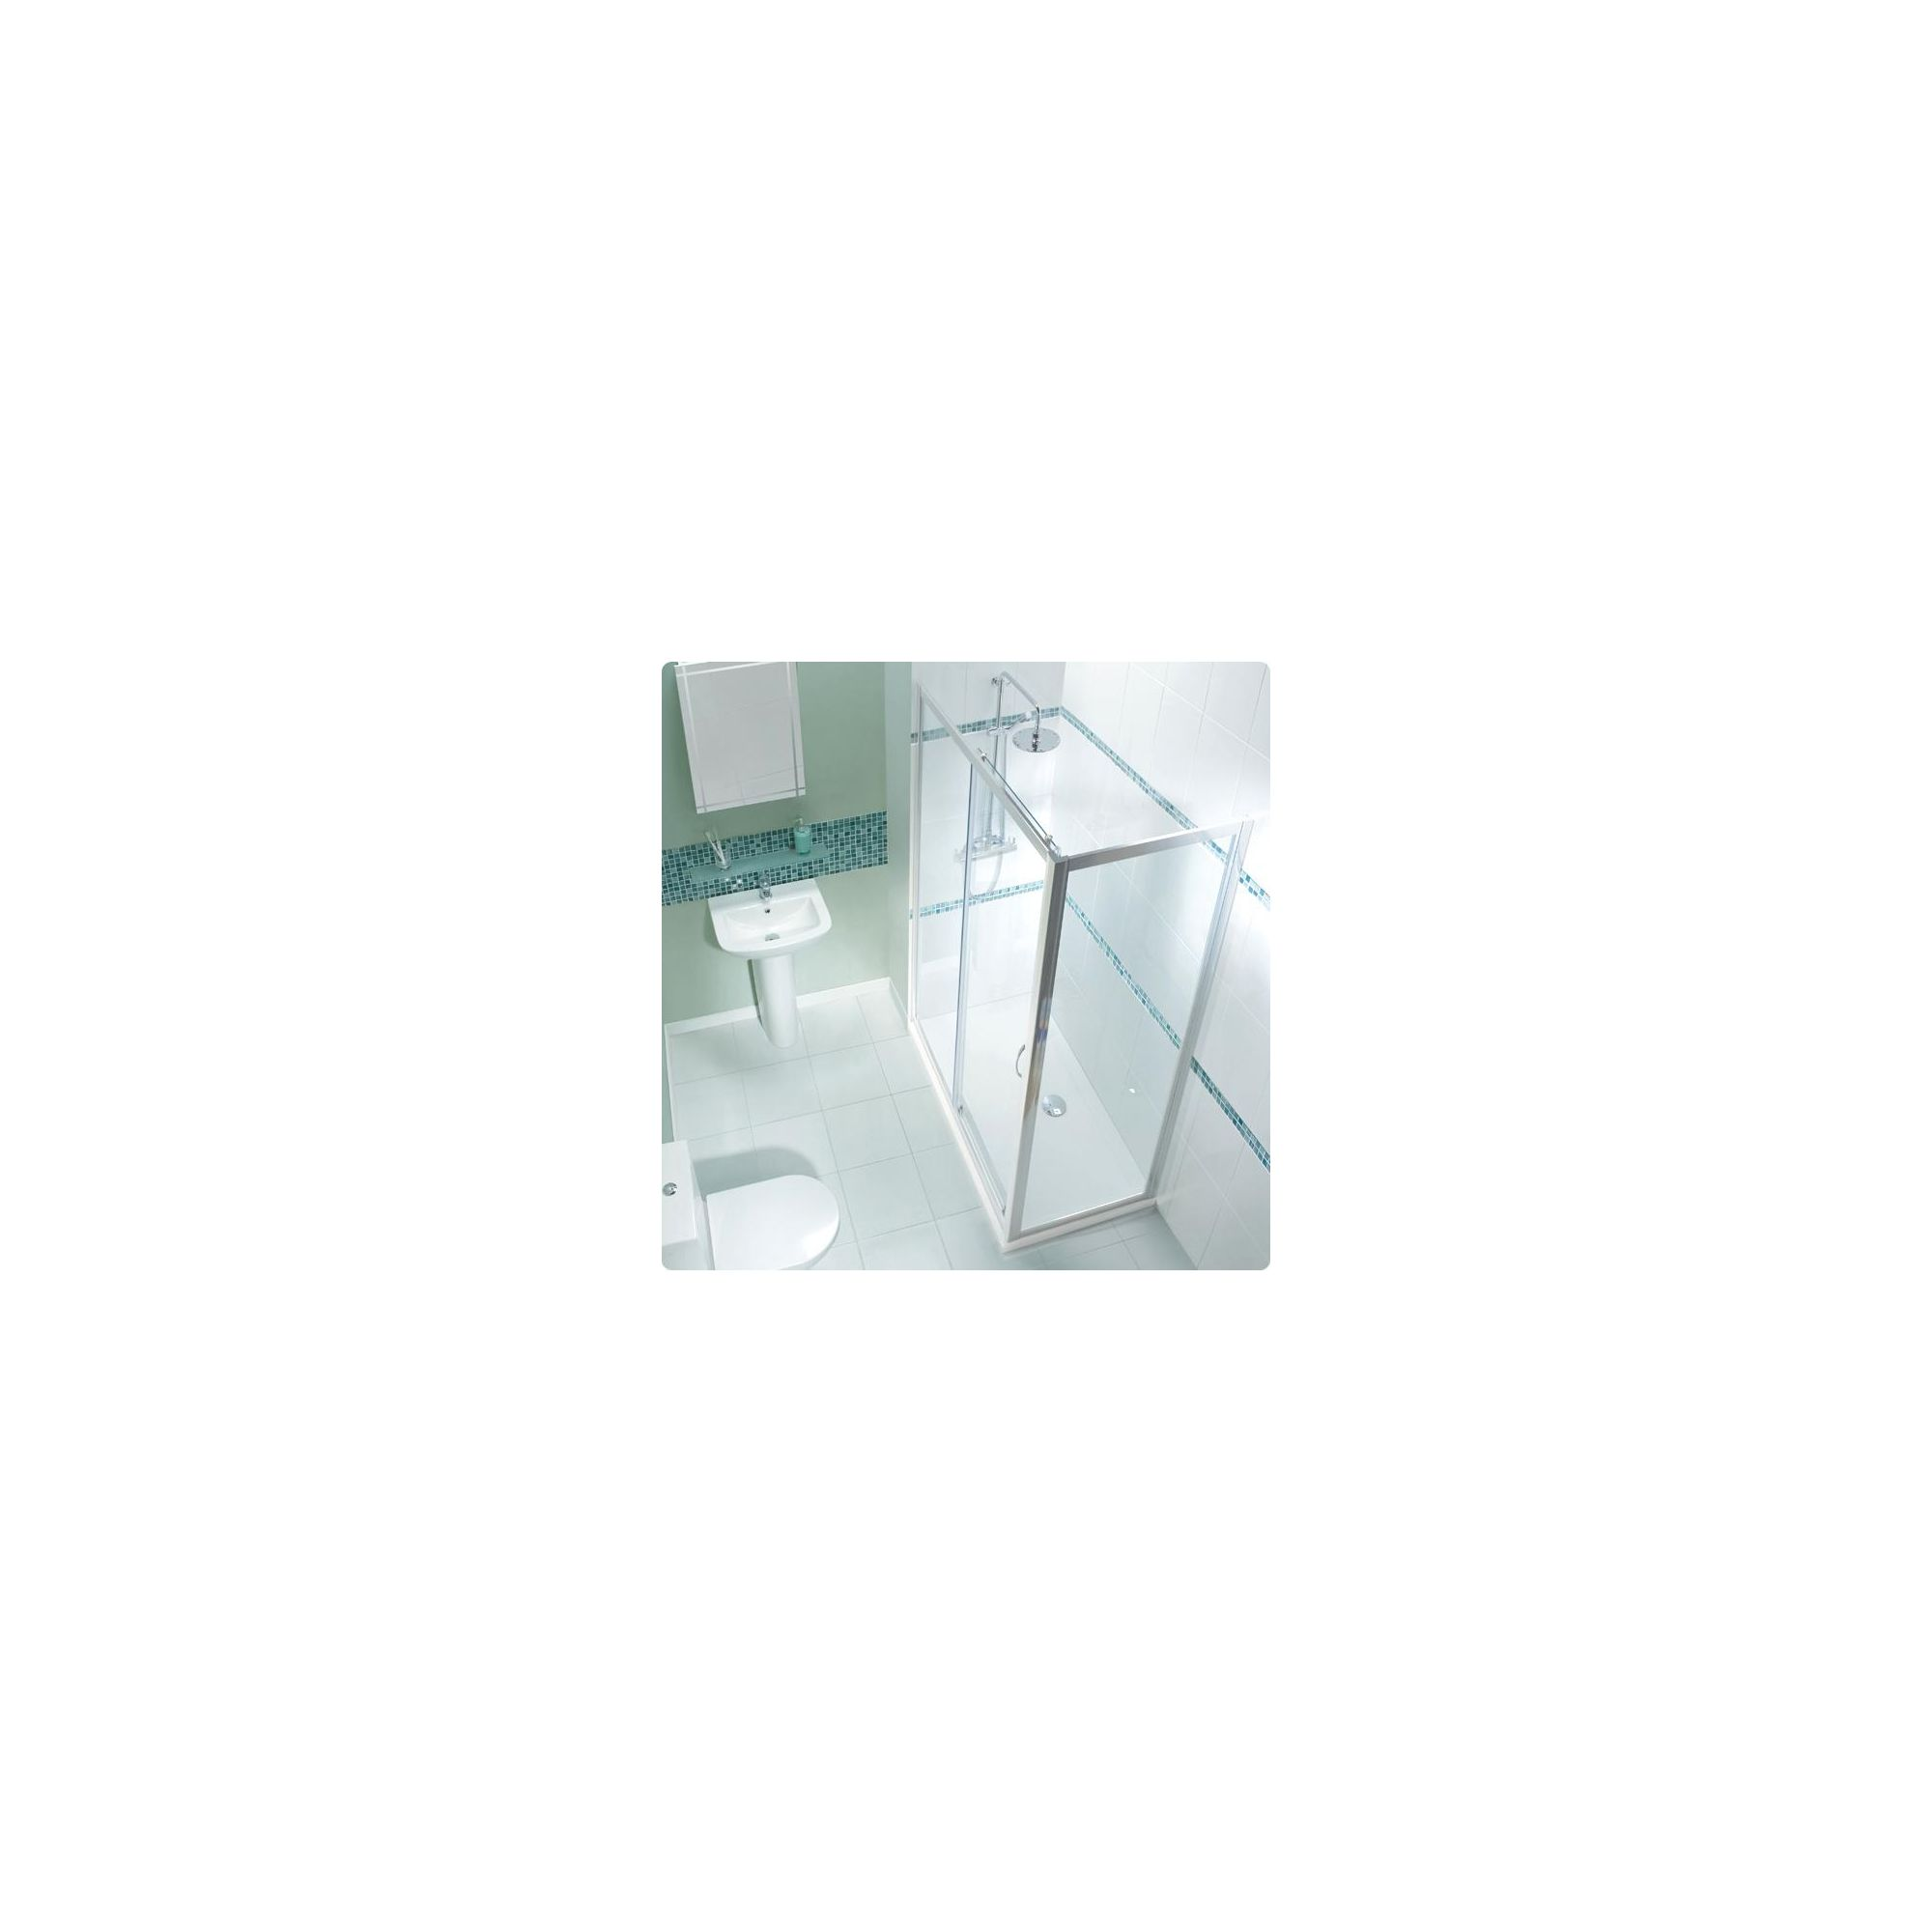 Balterley Framed Sliding Shower Enclosure, 1600mm x 700mm, Low Profile Tray, 6mm Glass at Tesco Direct